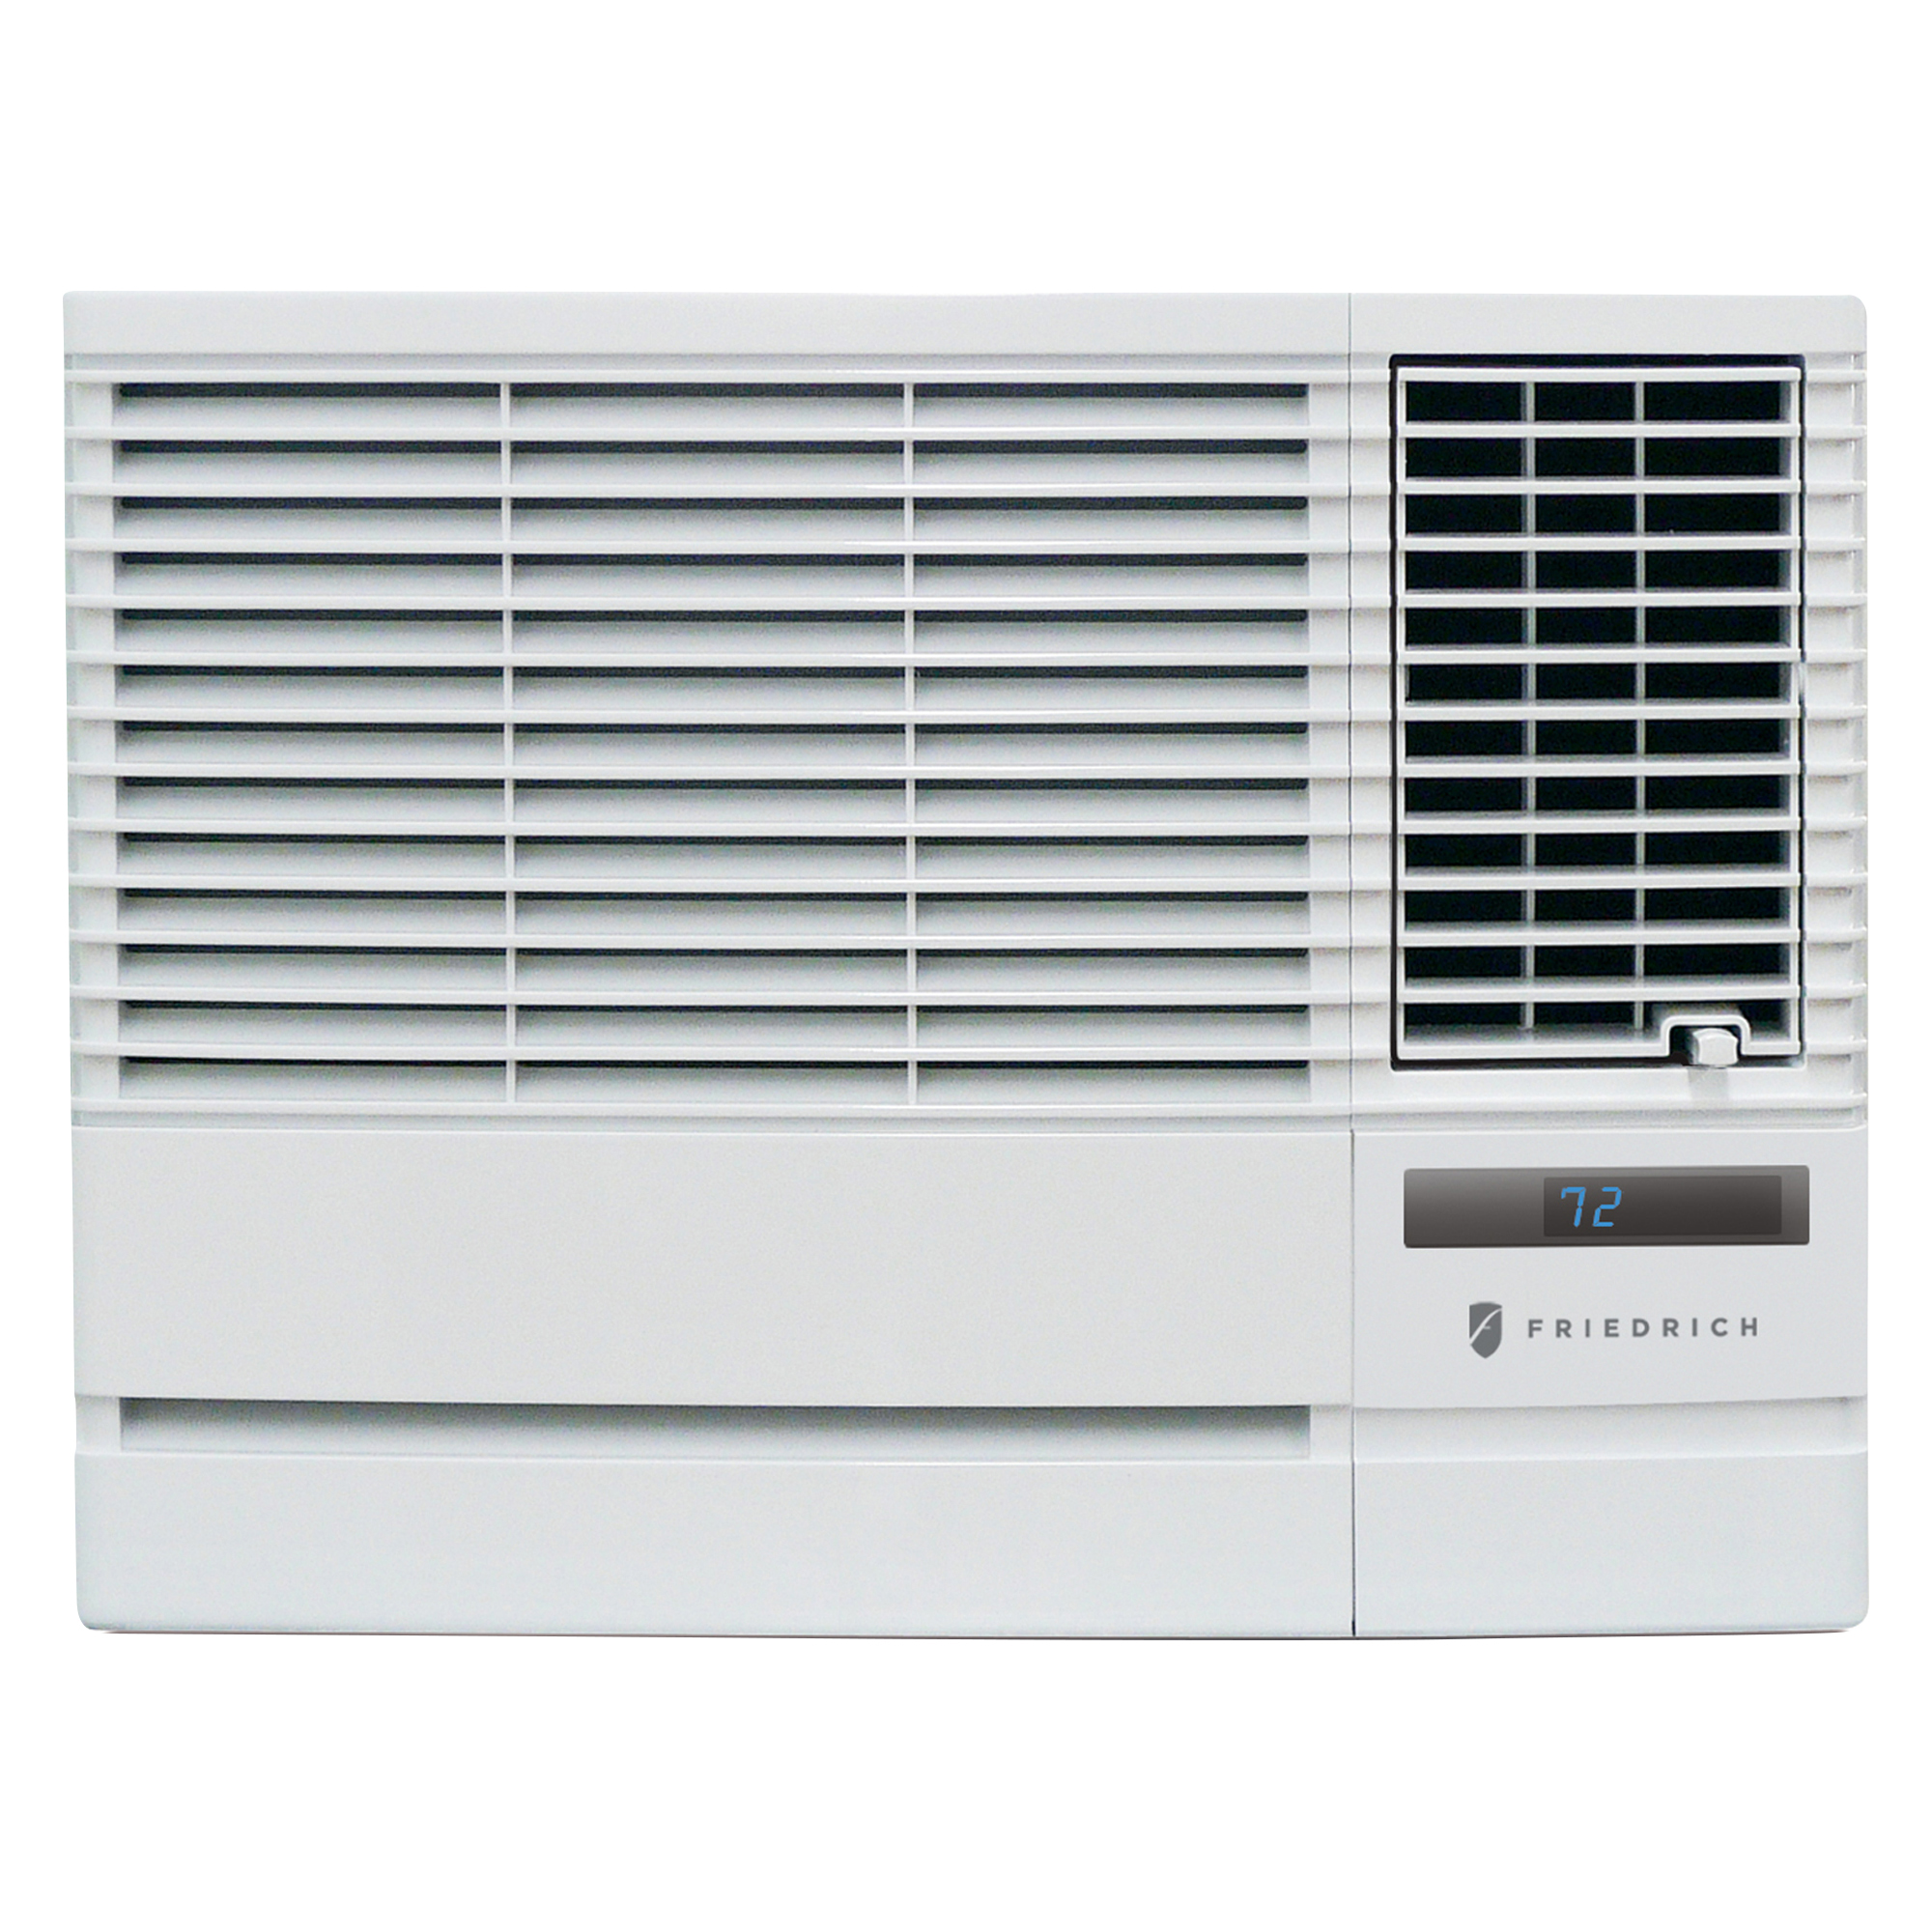 597c16969 Room Air Conditioning Solutions - Find Your Friedrich